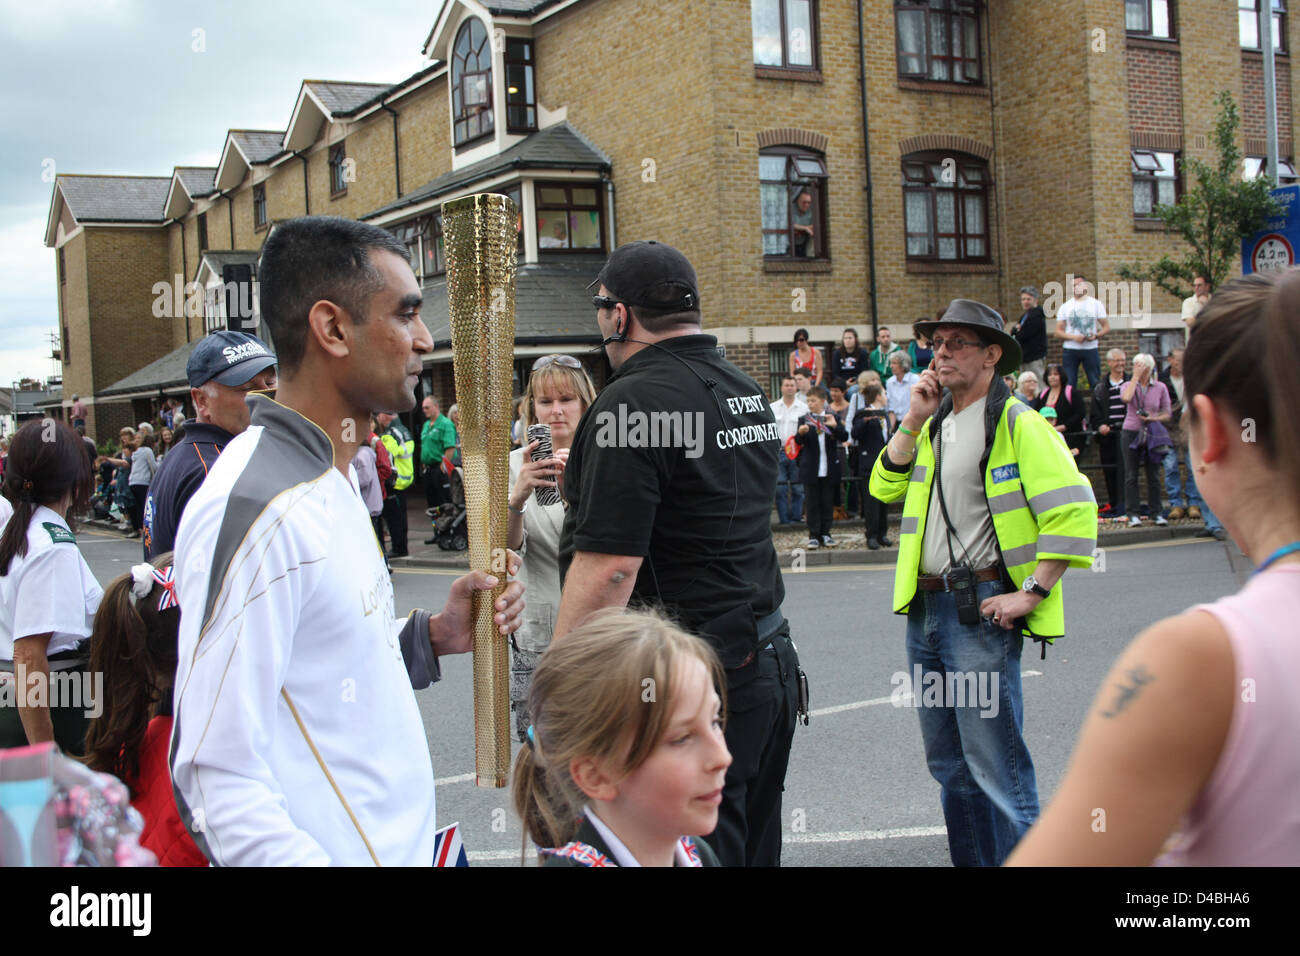 Torch relay in Faversham, Kent. - Stock Image